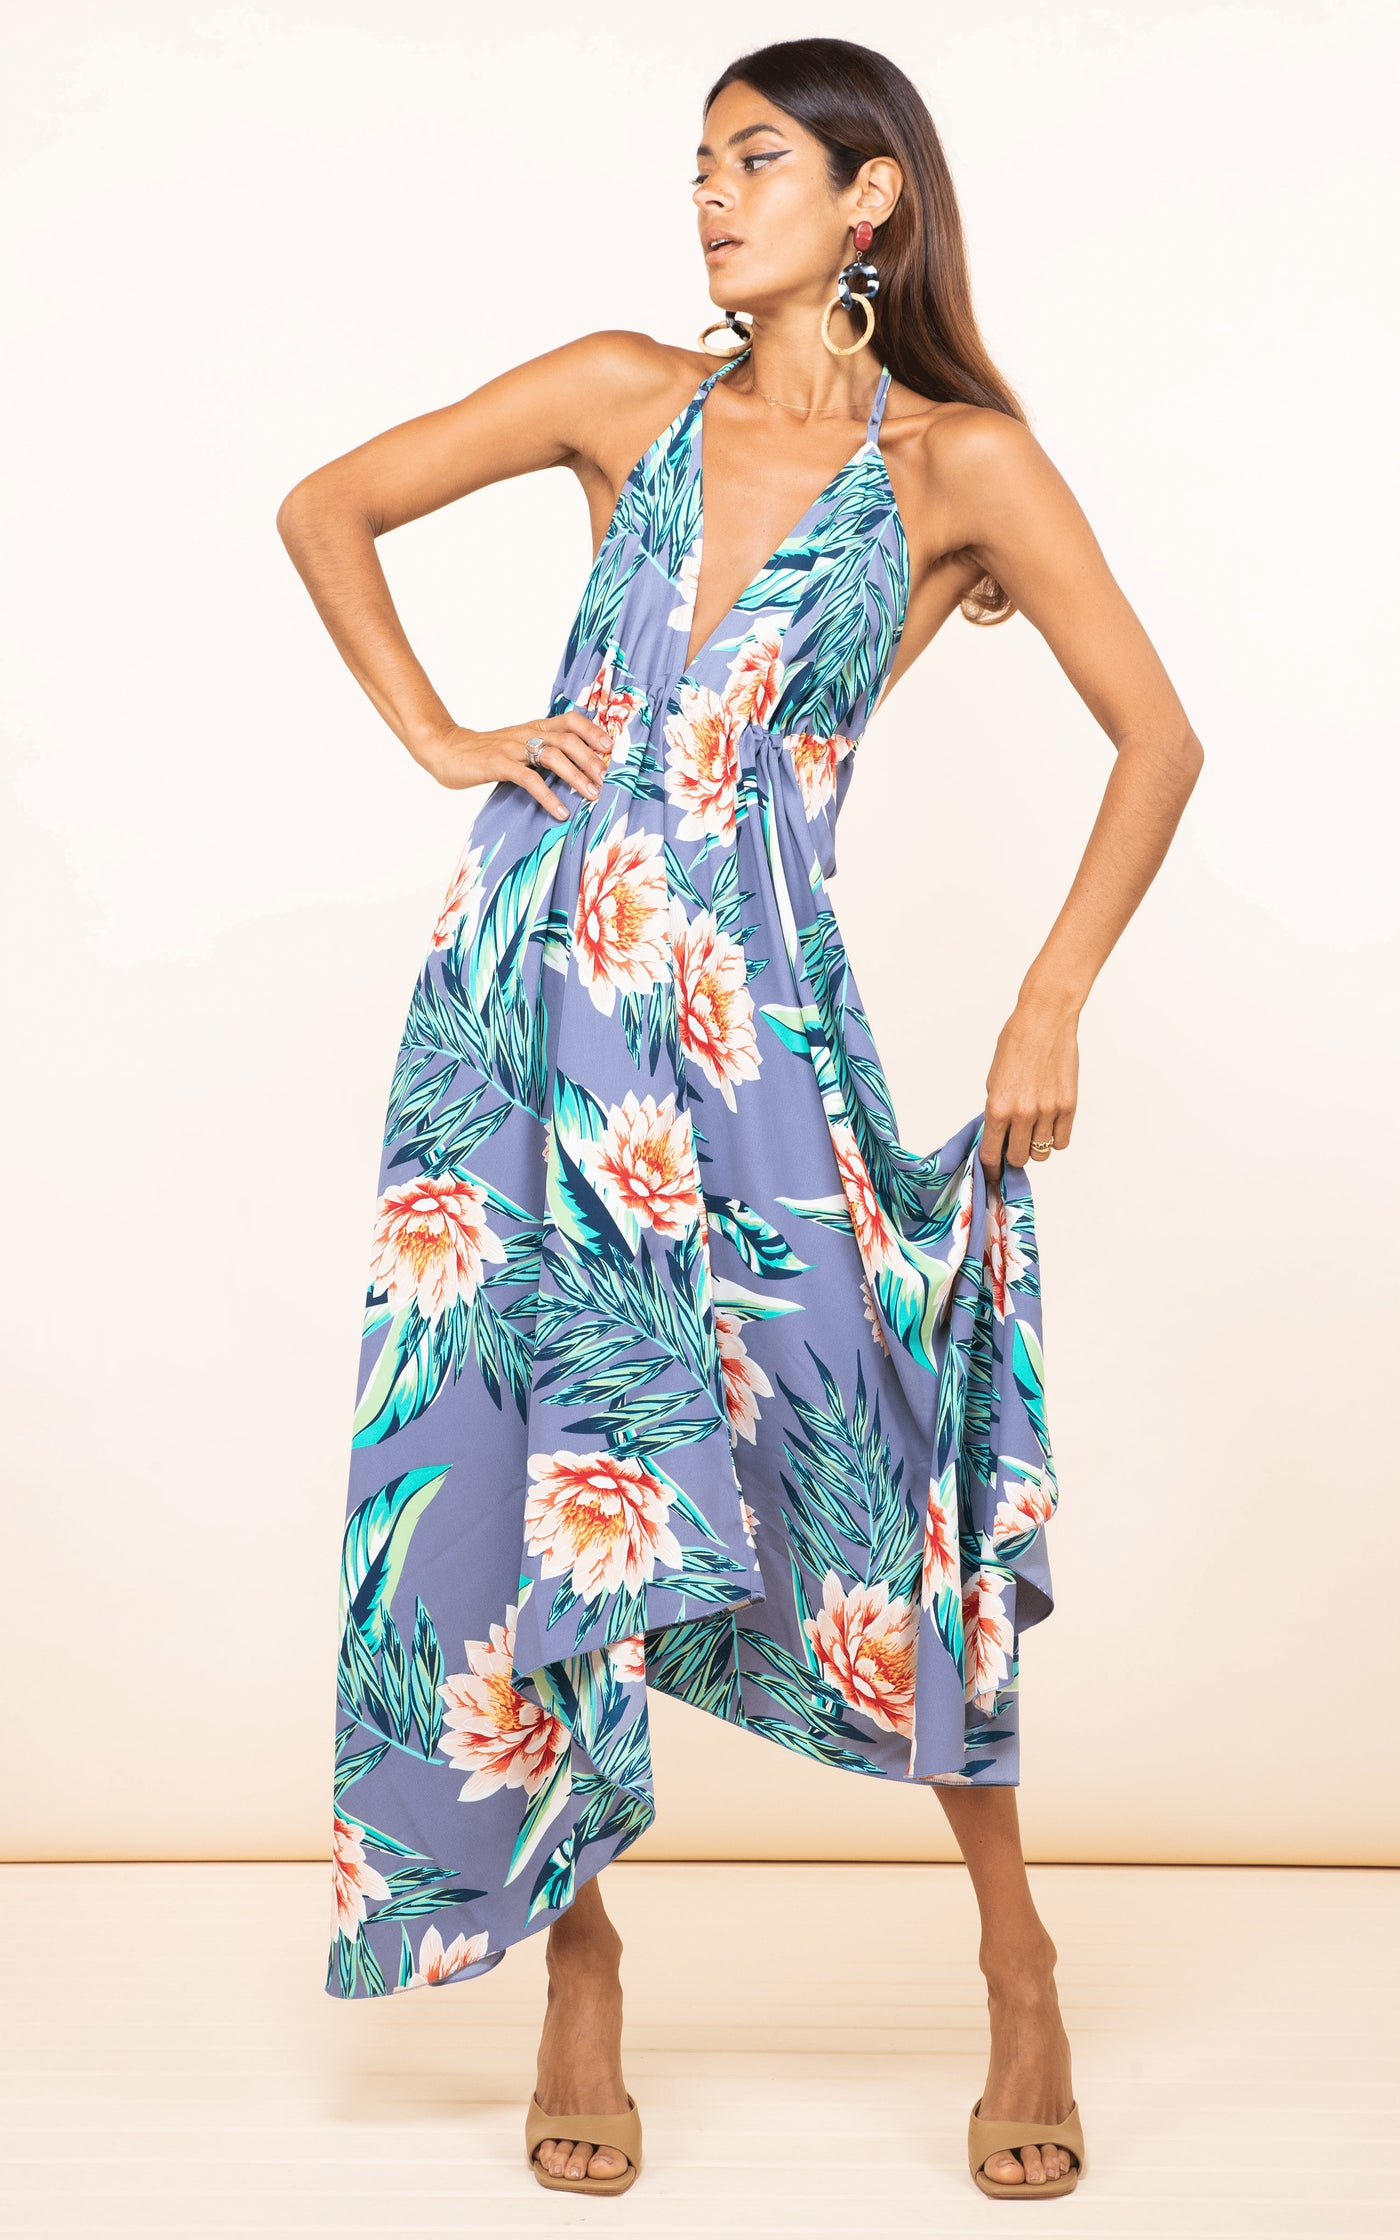 Dancing Leopard model with hands on hips wearing Boho Maxi Dress in grey floral tropical print